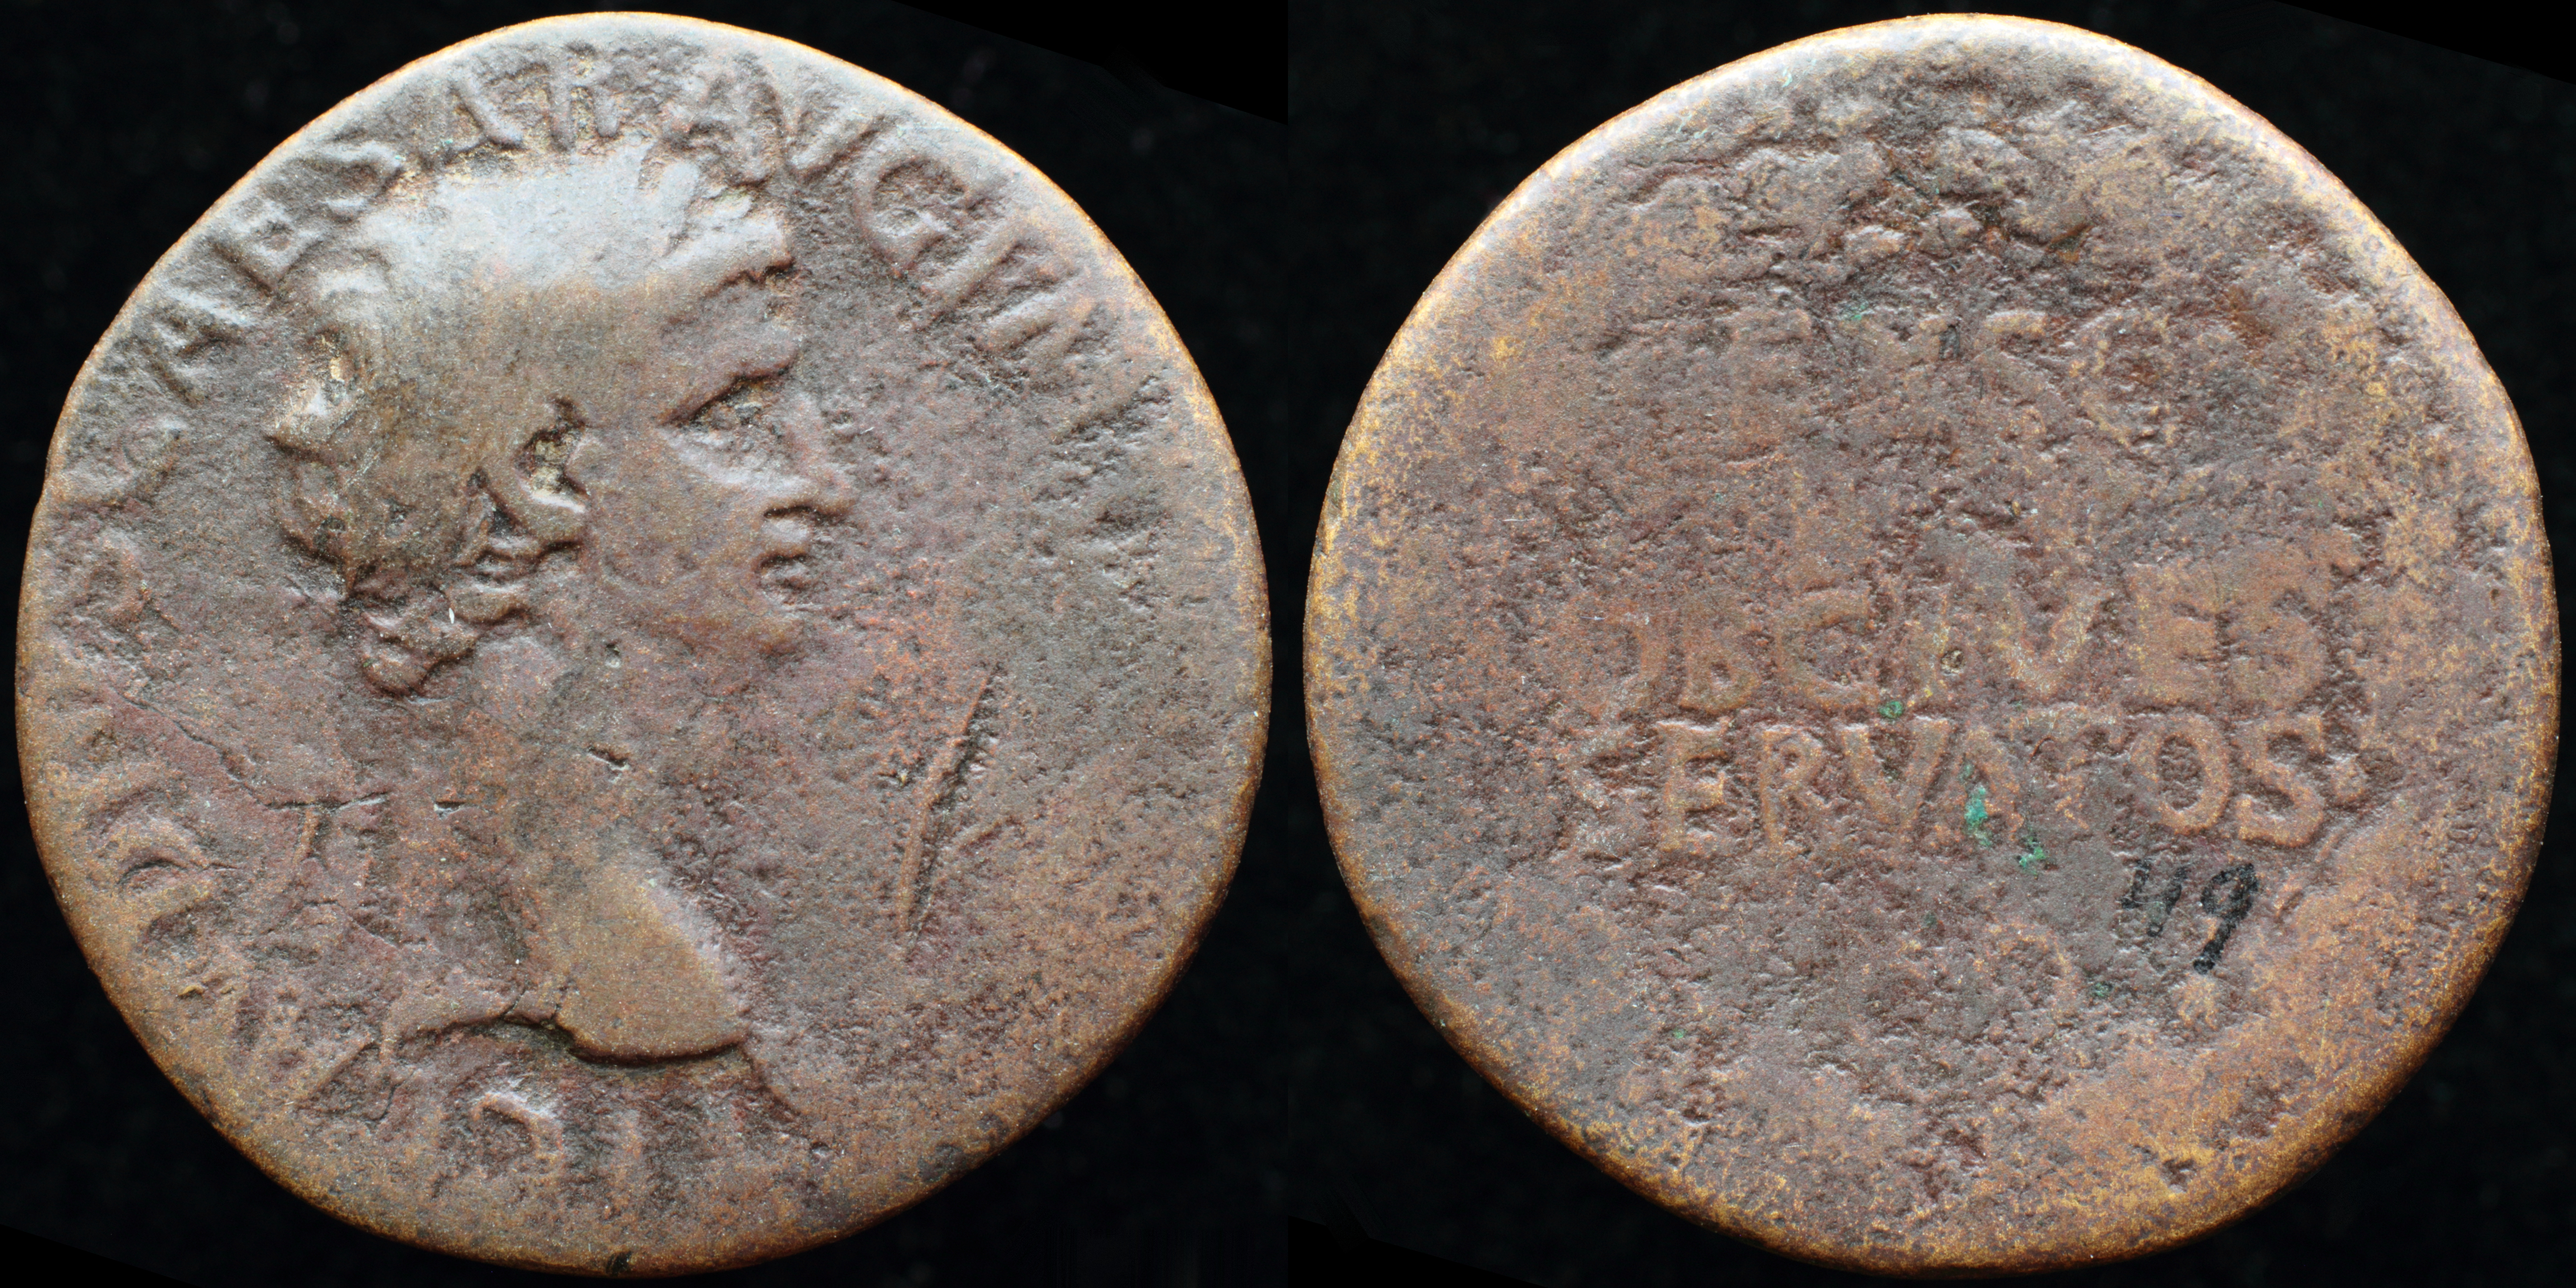 /Files/Images/Coinsite/CoinDB/Claudius_sestertius.jpg